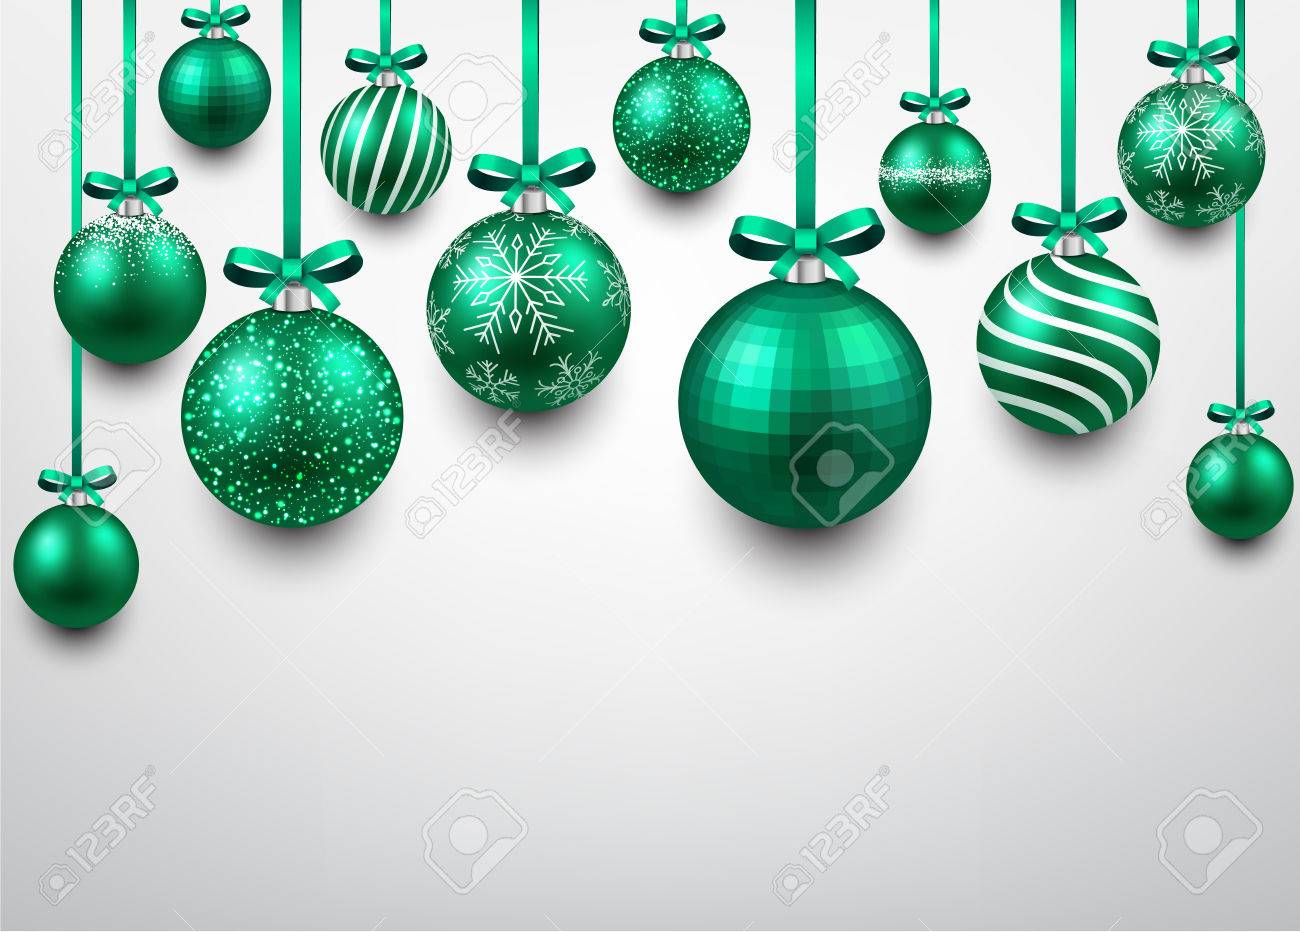 Abstract Arc Background With Green Christmas Balls Vector Illustration Stock